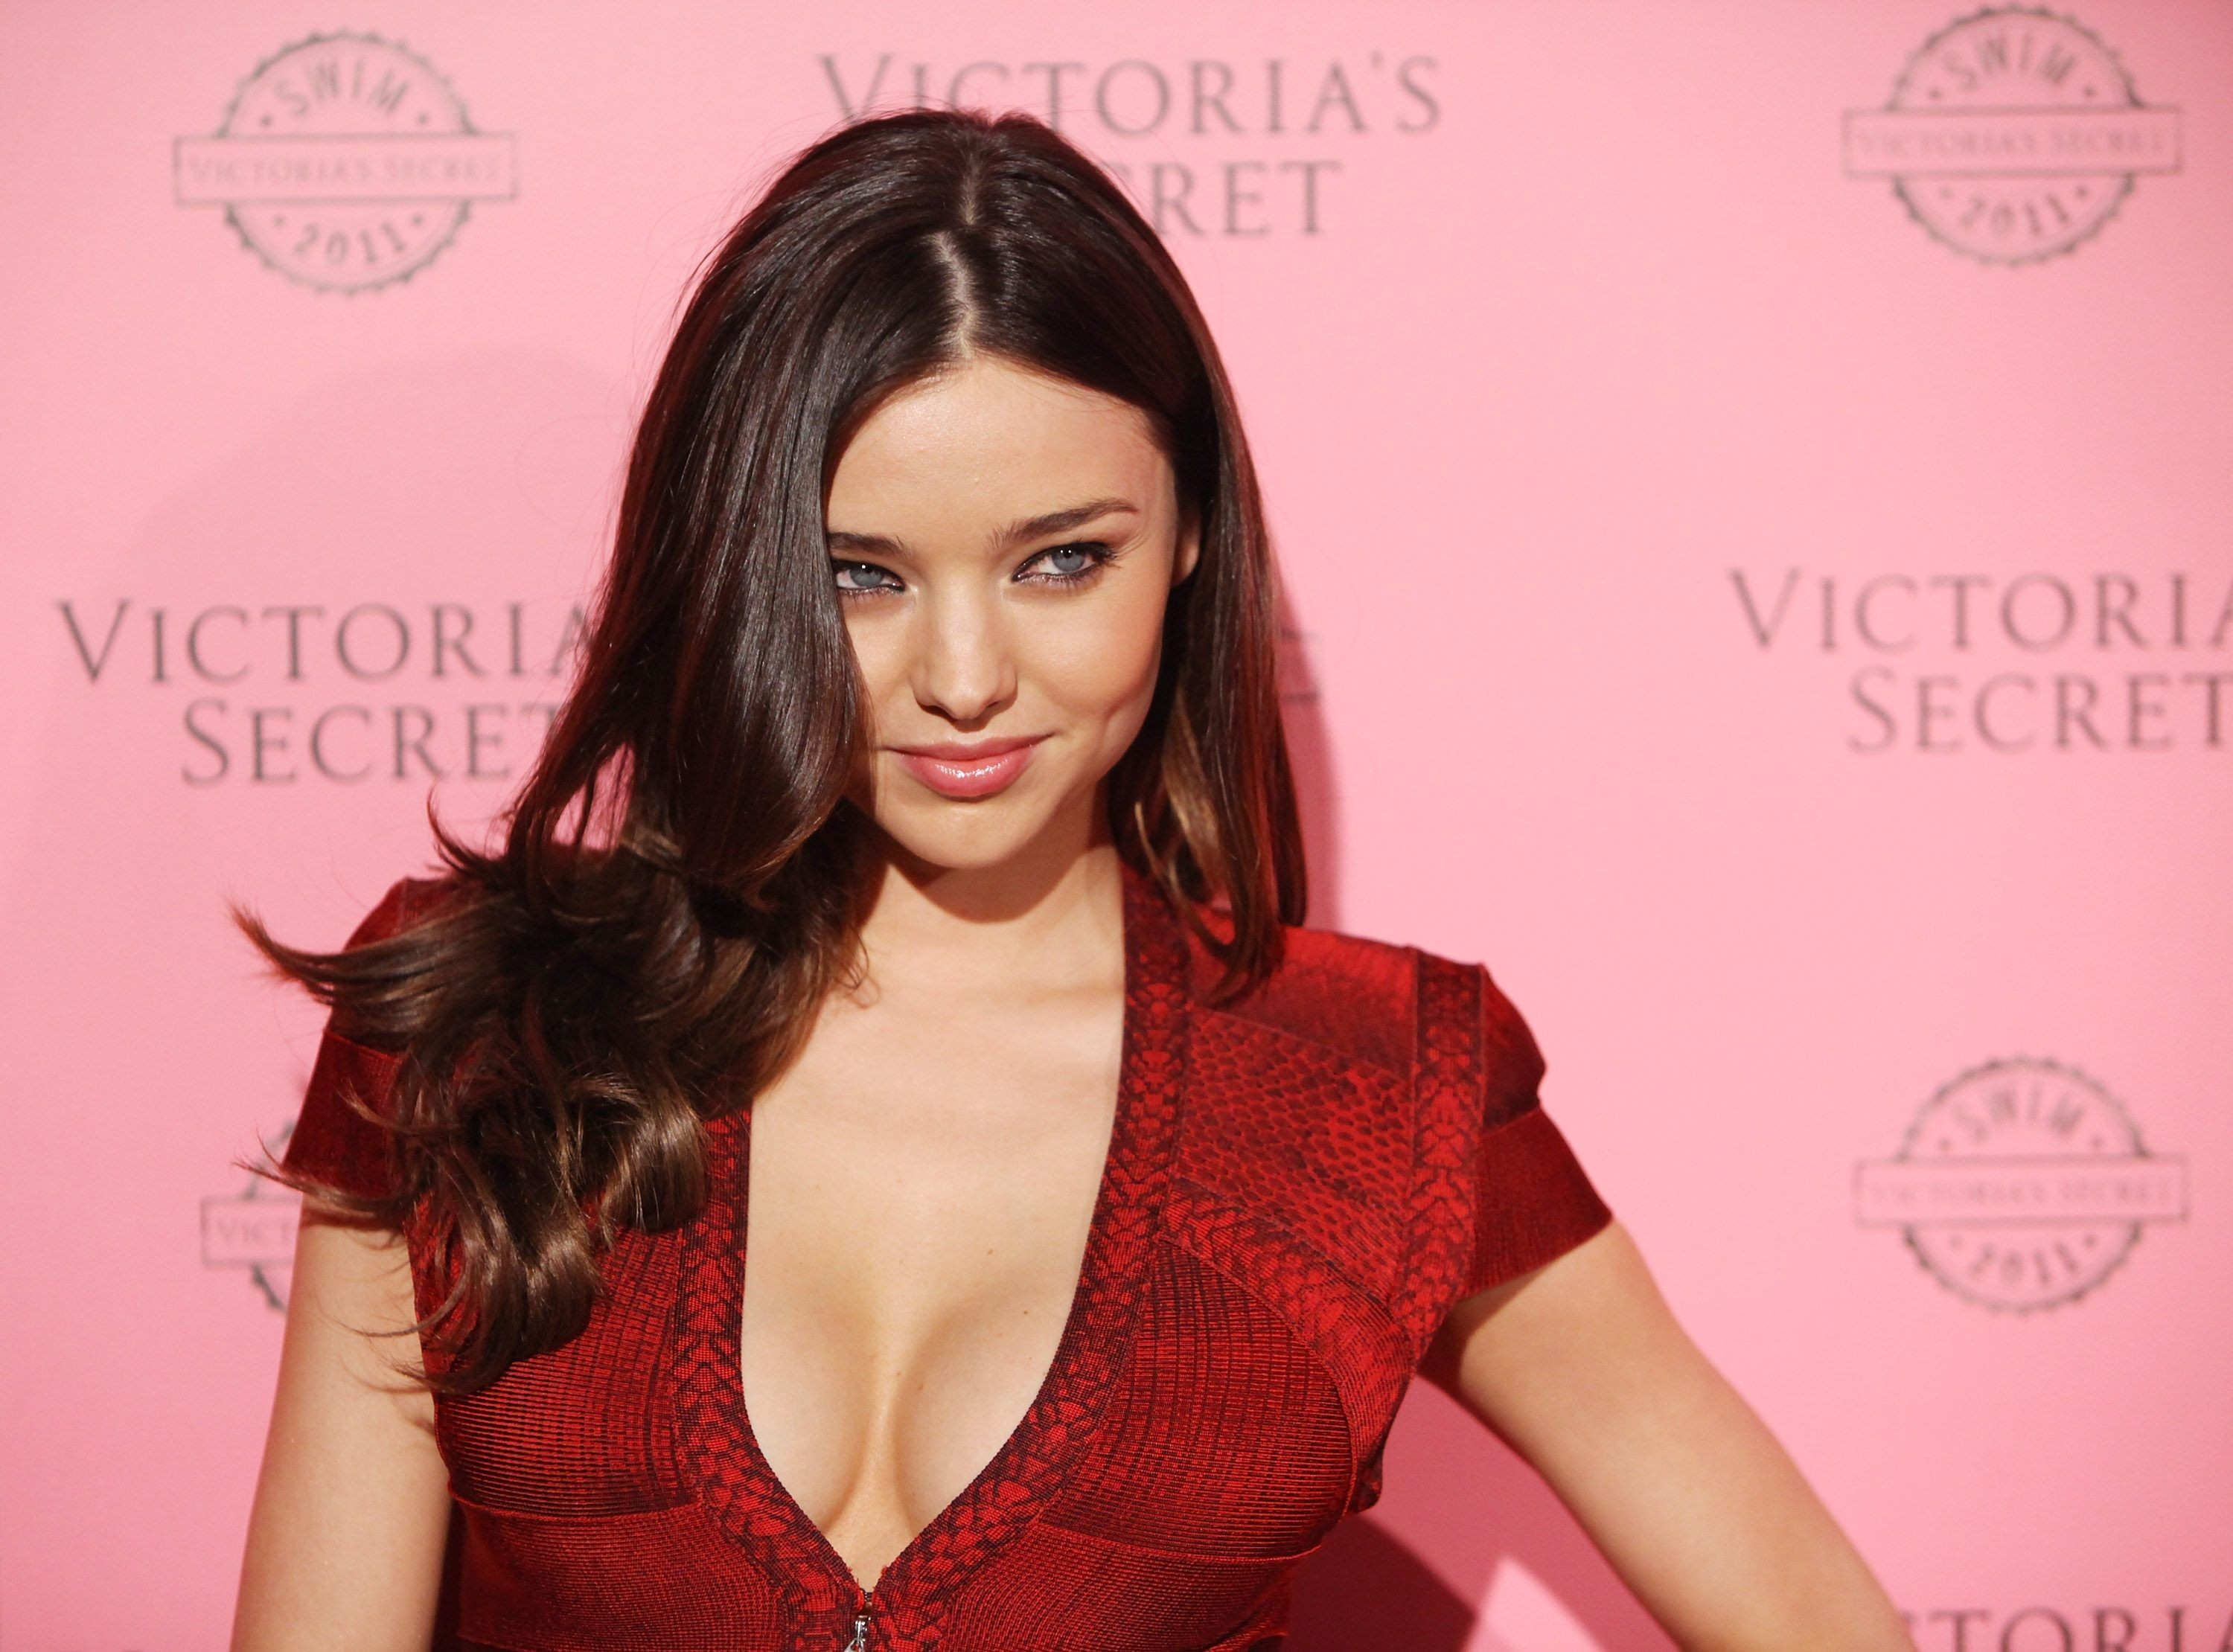 brunettes woman miranda kerr HD Wallpaper